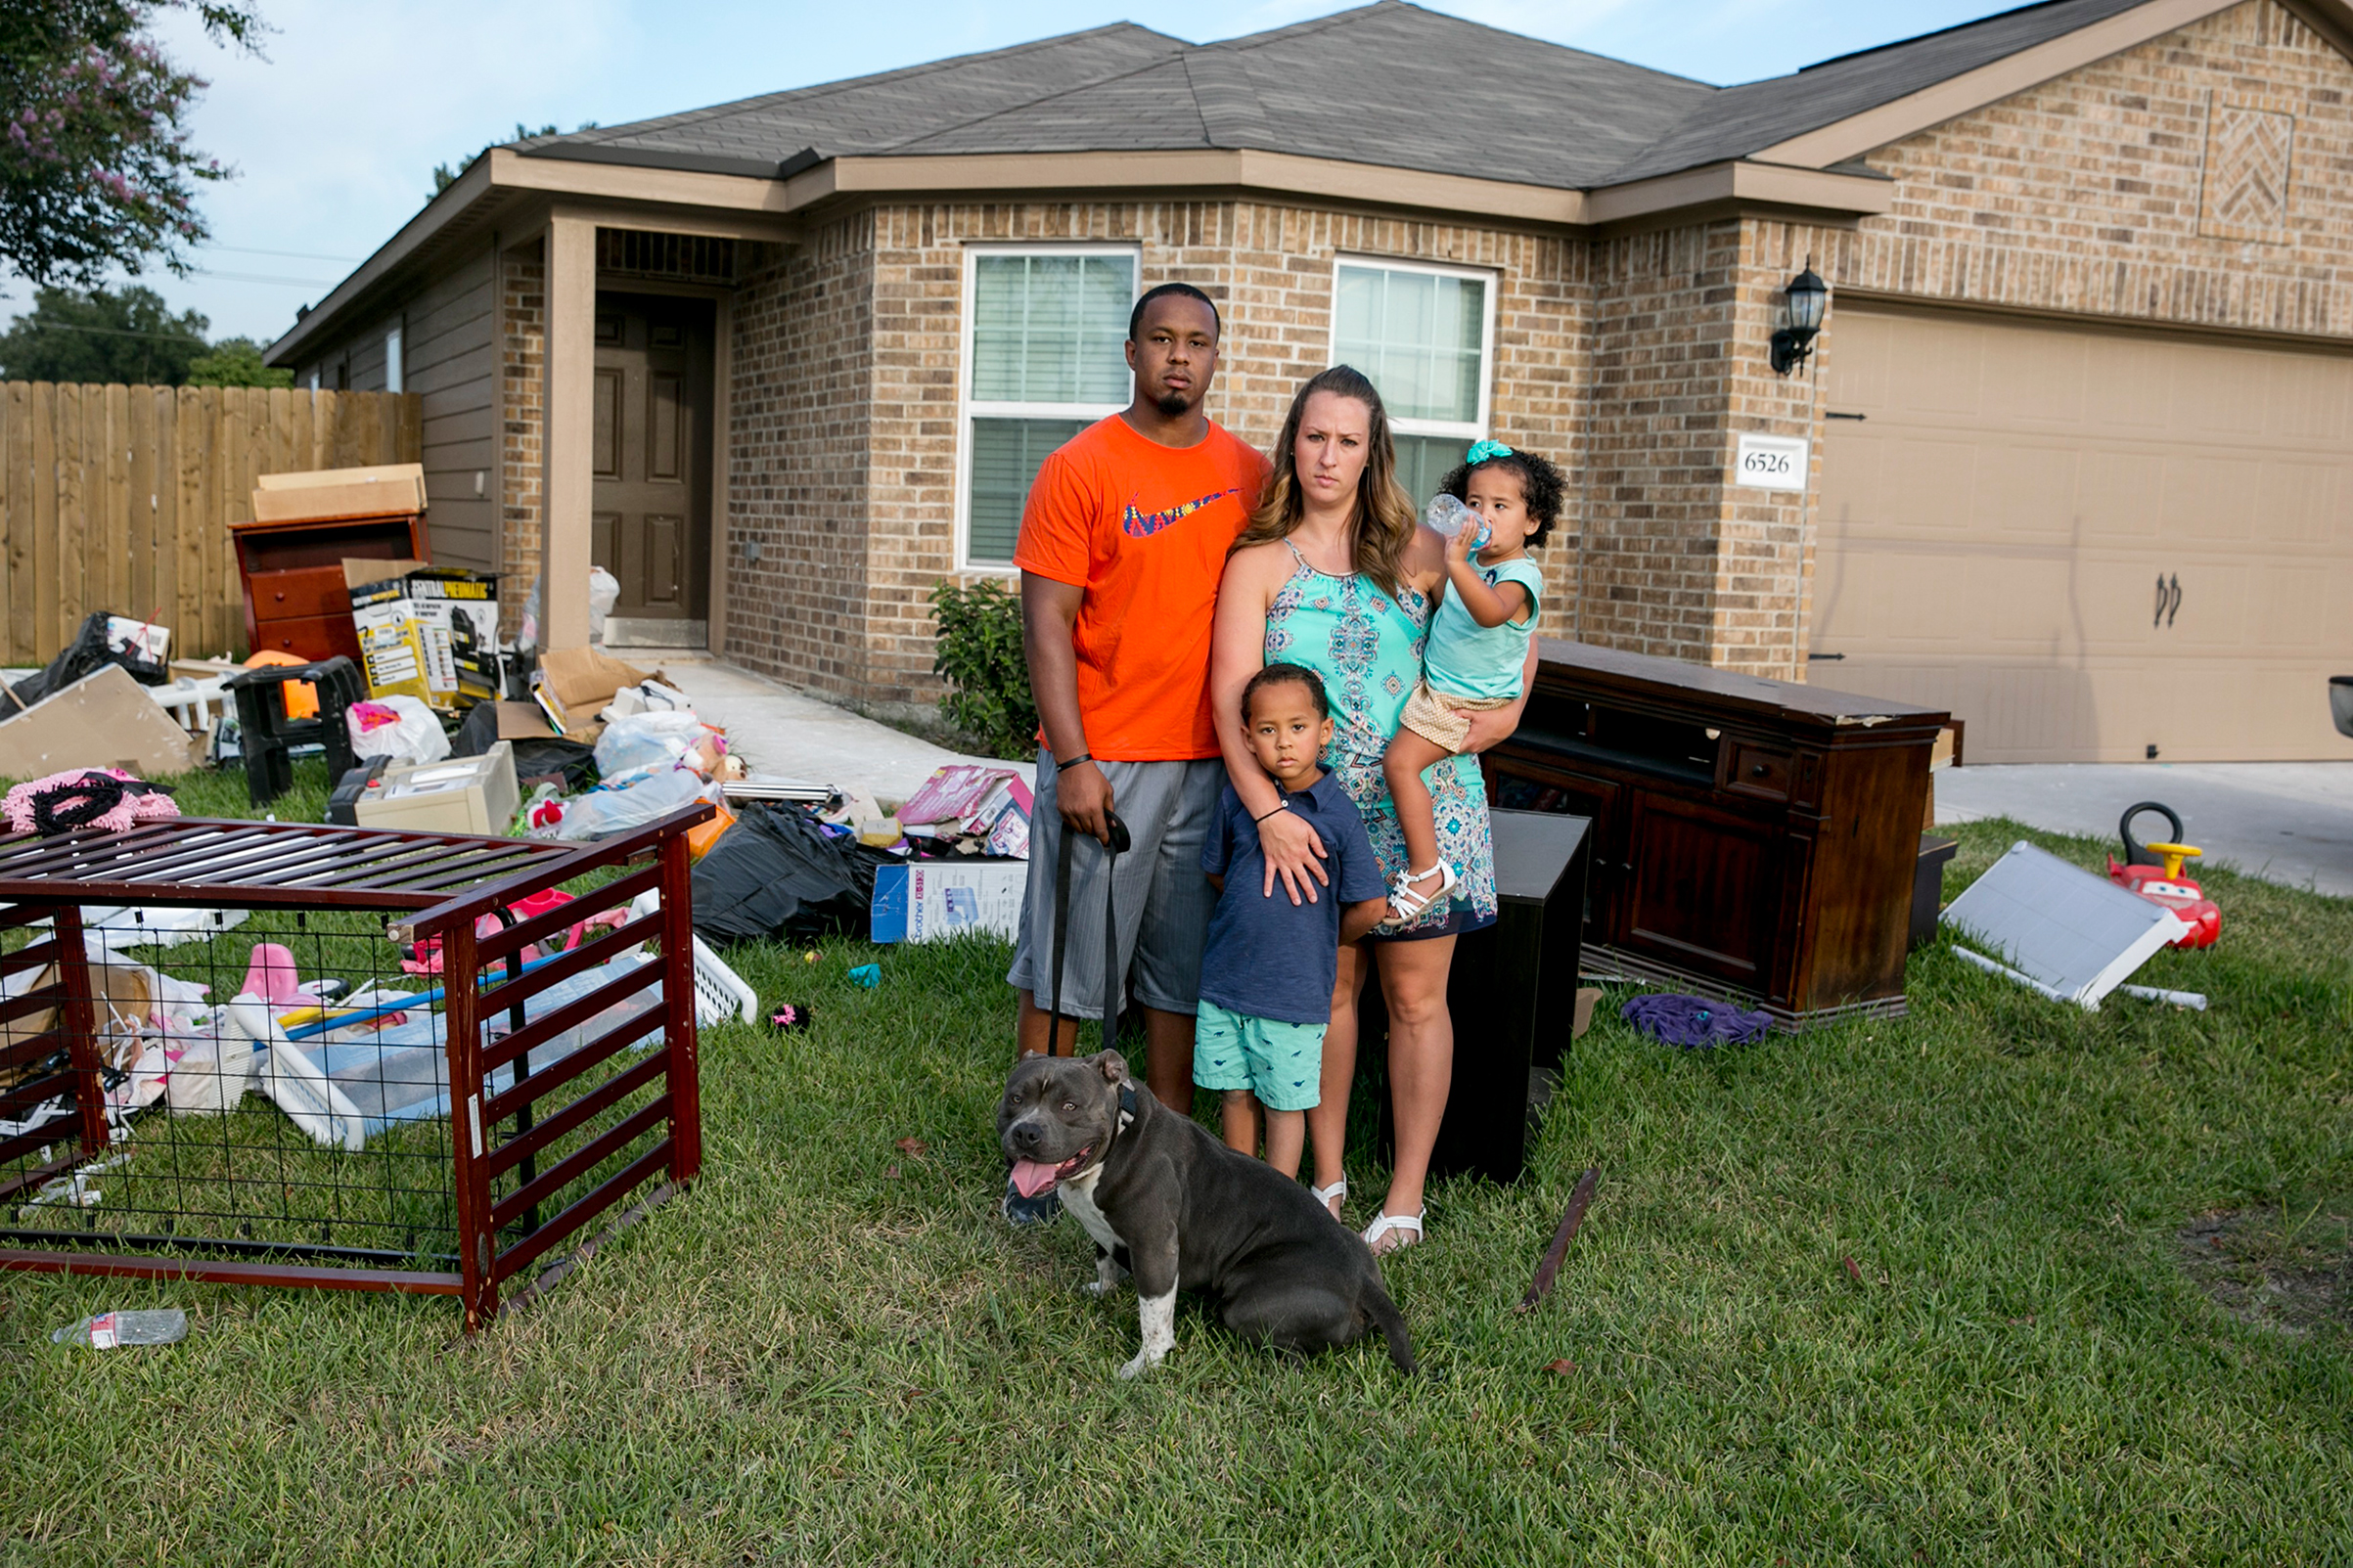 Isiah Courtney stands in the front yard of his Houston home with his wife, Danielle, son Bryson, daughter Aubree and dog Bruce